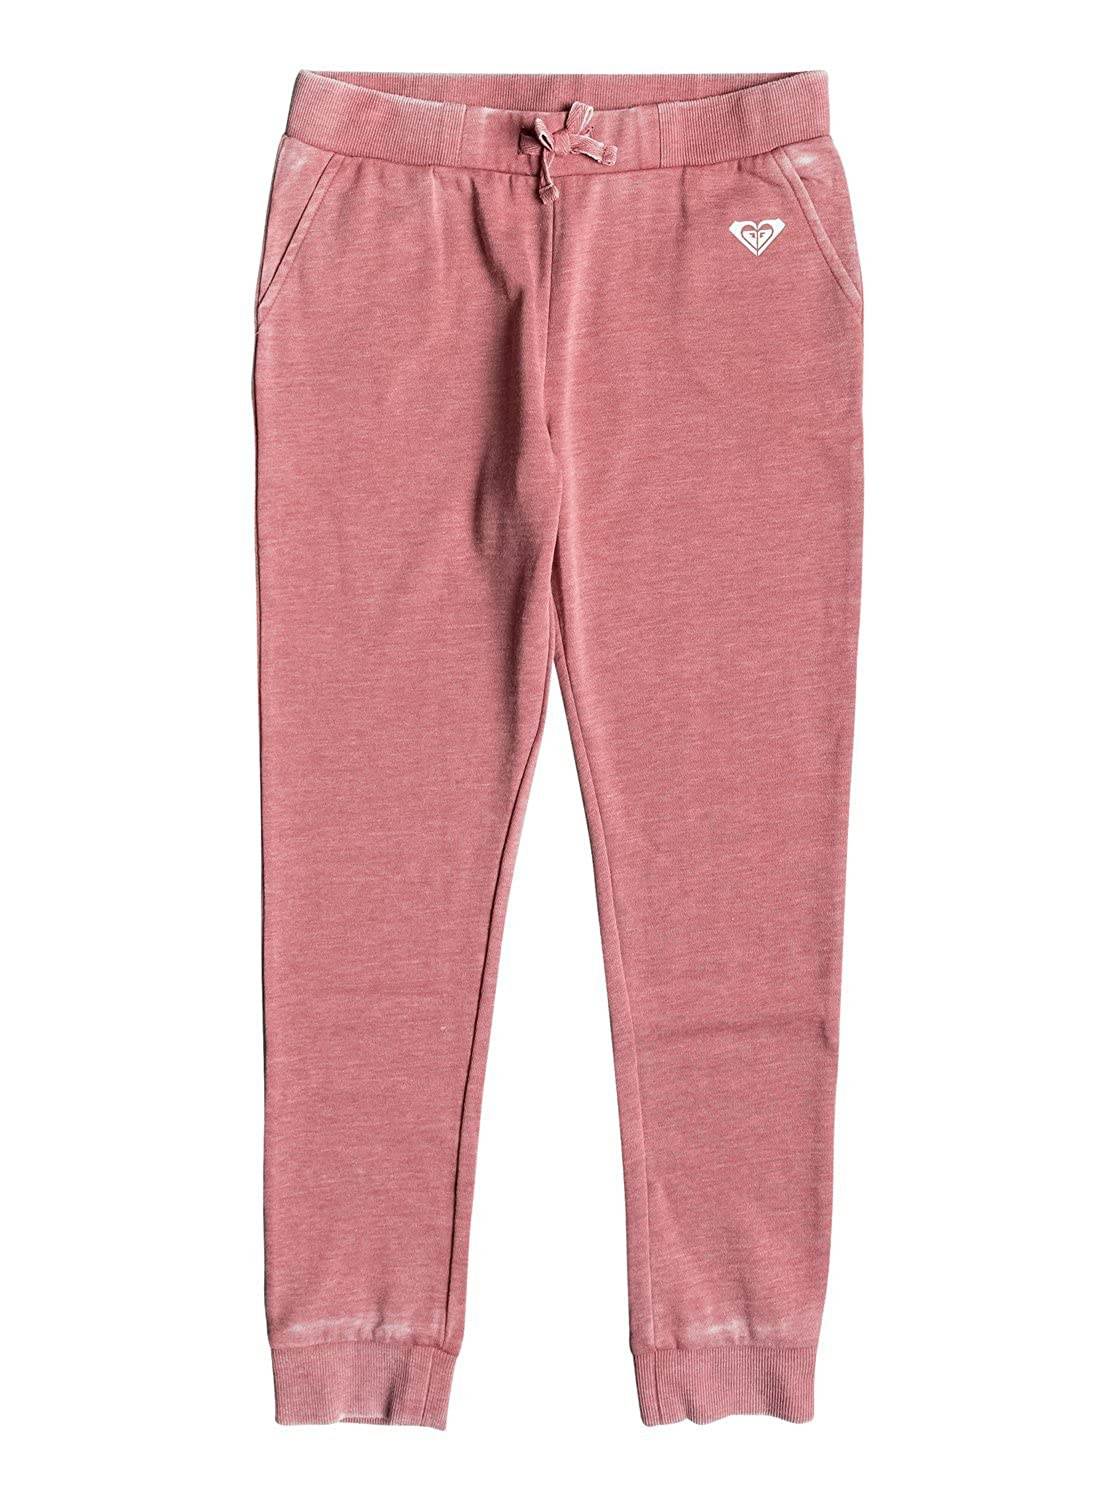 Roxy Girls Girls 7-14 Groovy Song Slim Fit Joggers Argfb03003